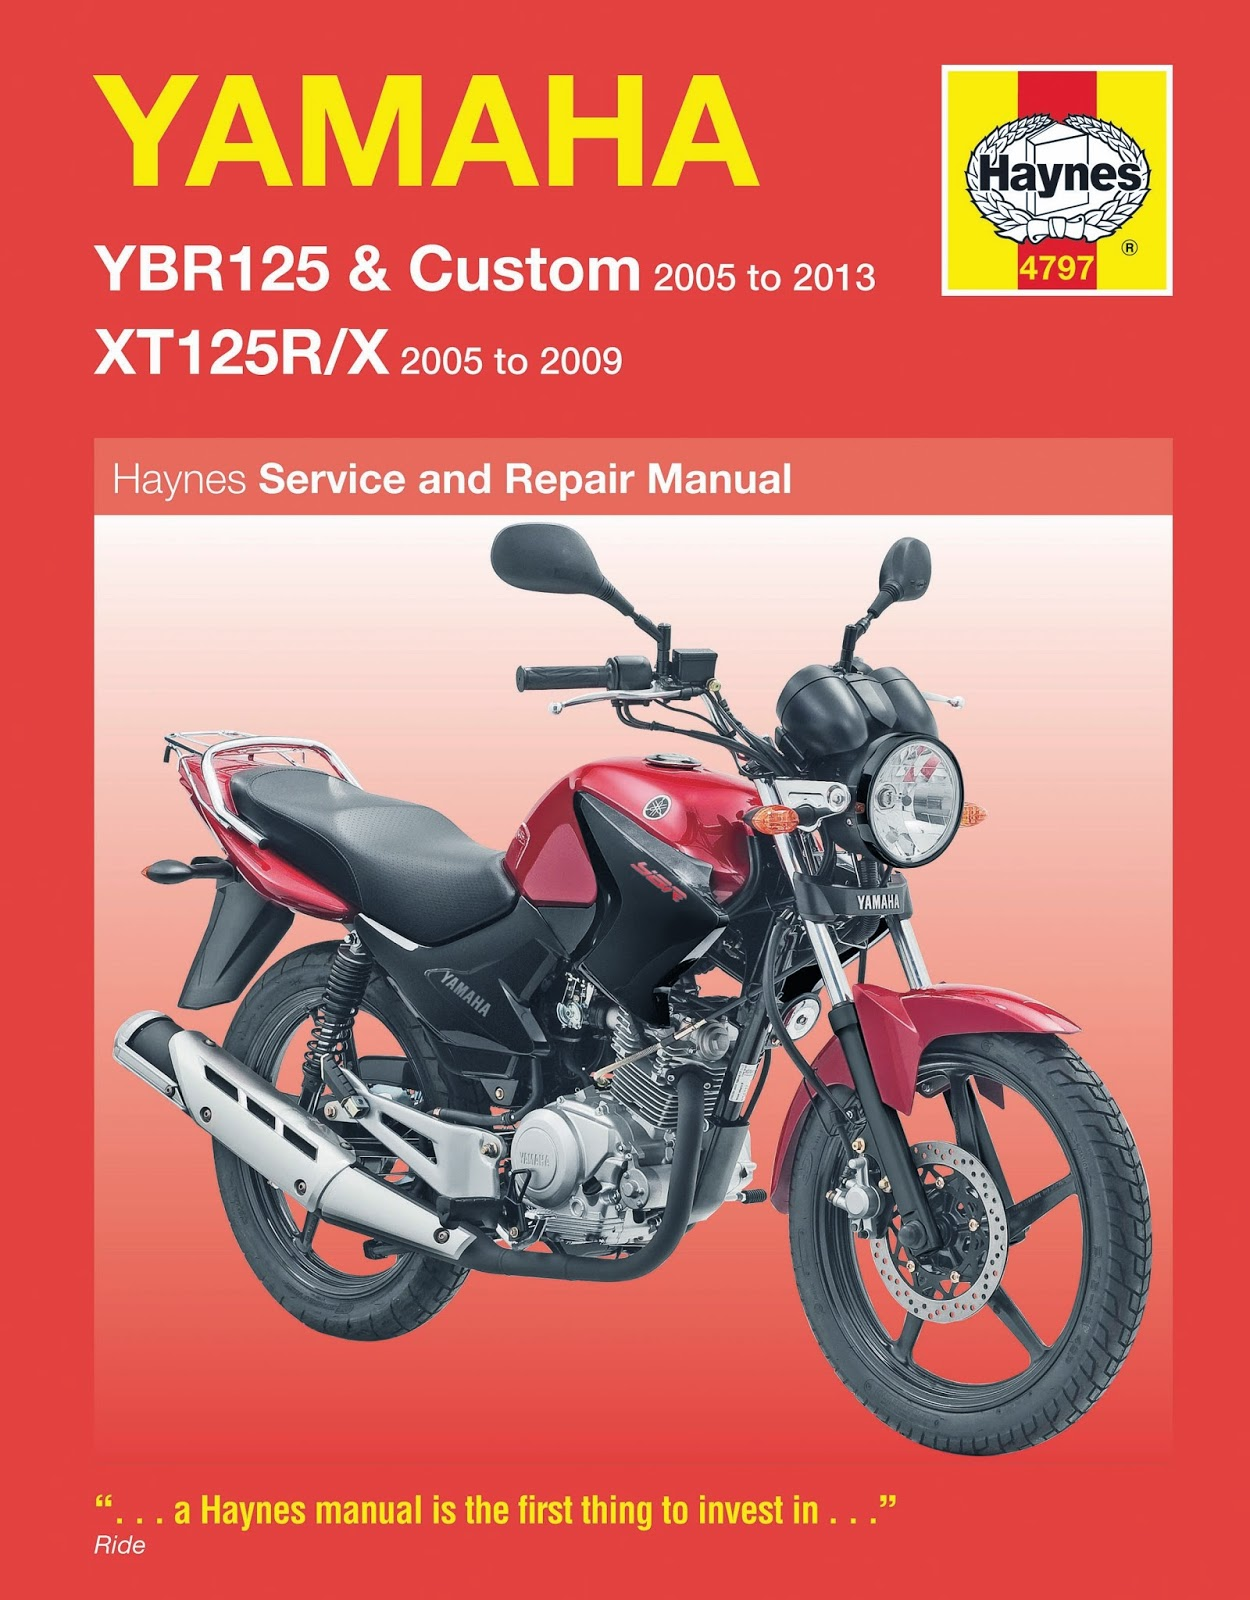 Yamaha Ybr 125 Owner Blog Electrical System Diagram As Well Electronic Circuit Diagrams On Generator Wiring And Components